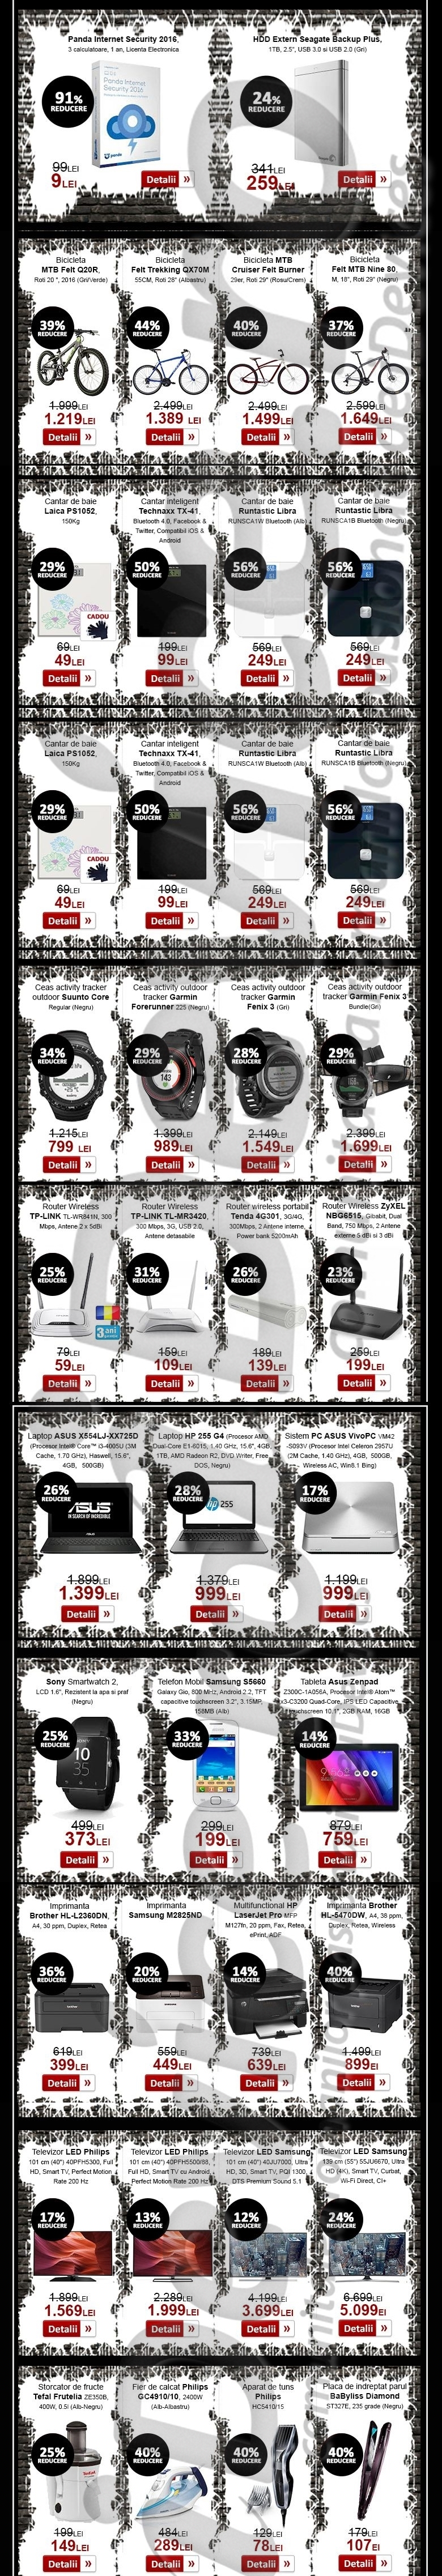 newsletter evoMAG Black Friday 2015